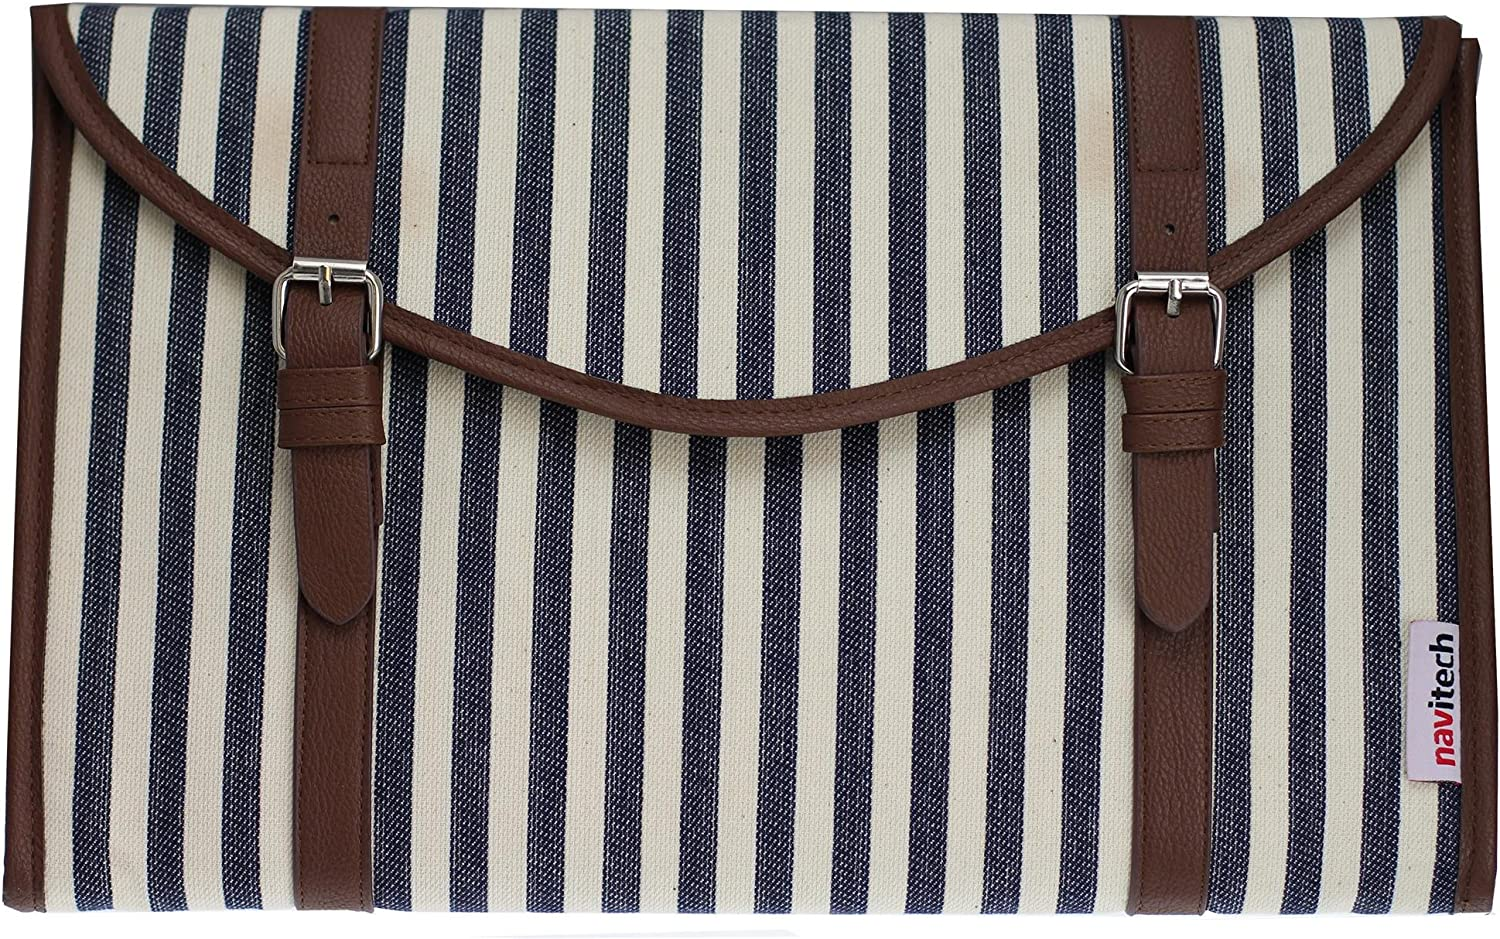 Navitech Canvas Fabric Style Laptop Sleeve Bag Case Cover Compatible with The Acer Travelmate P259 14 inch